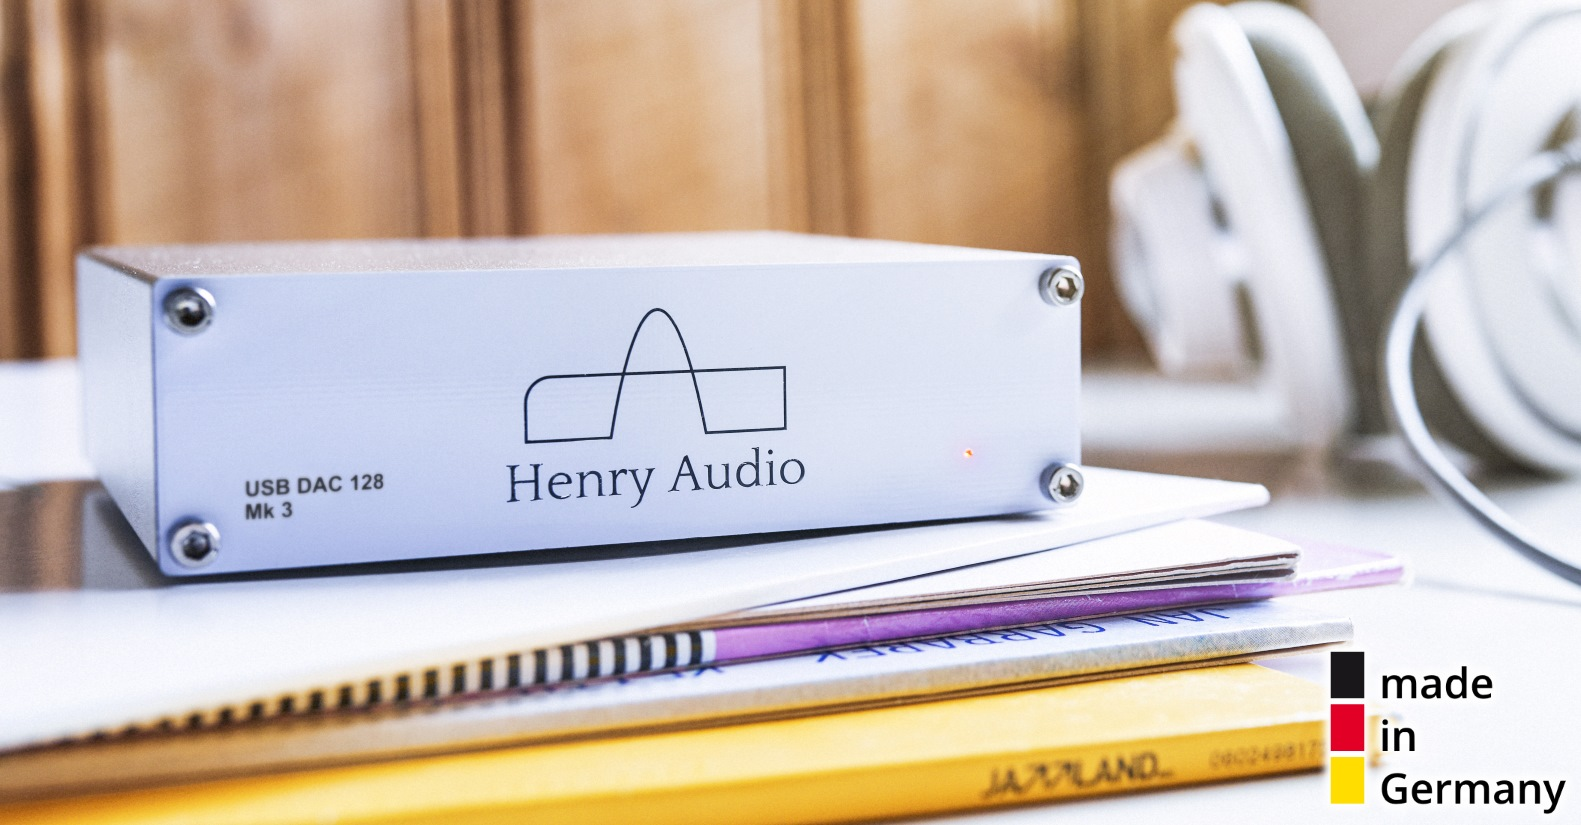 Henry Audio USB DAC - Eternal life for your stereo system!